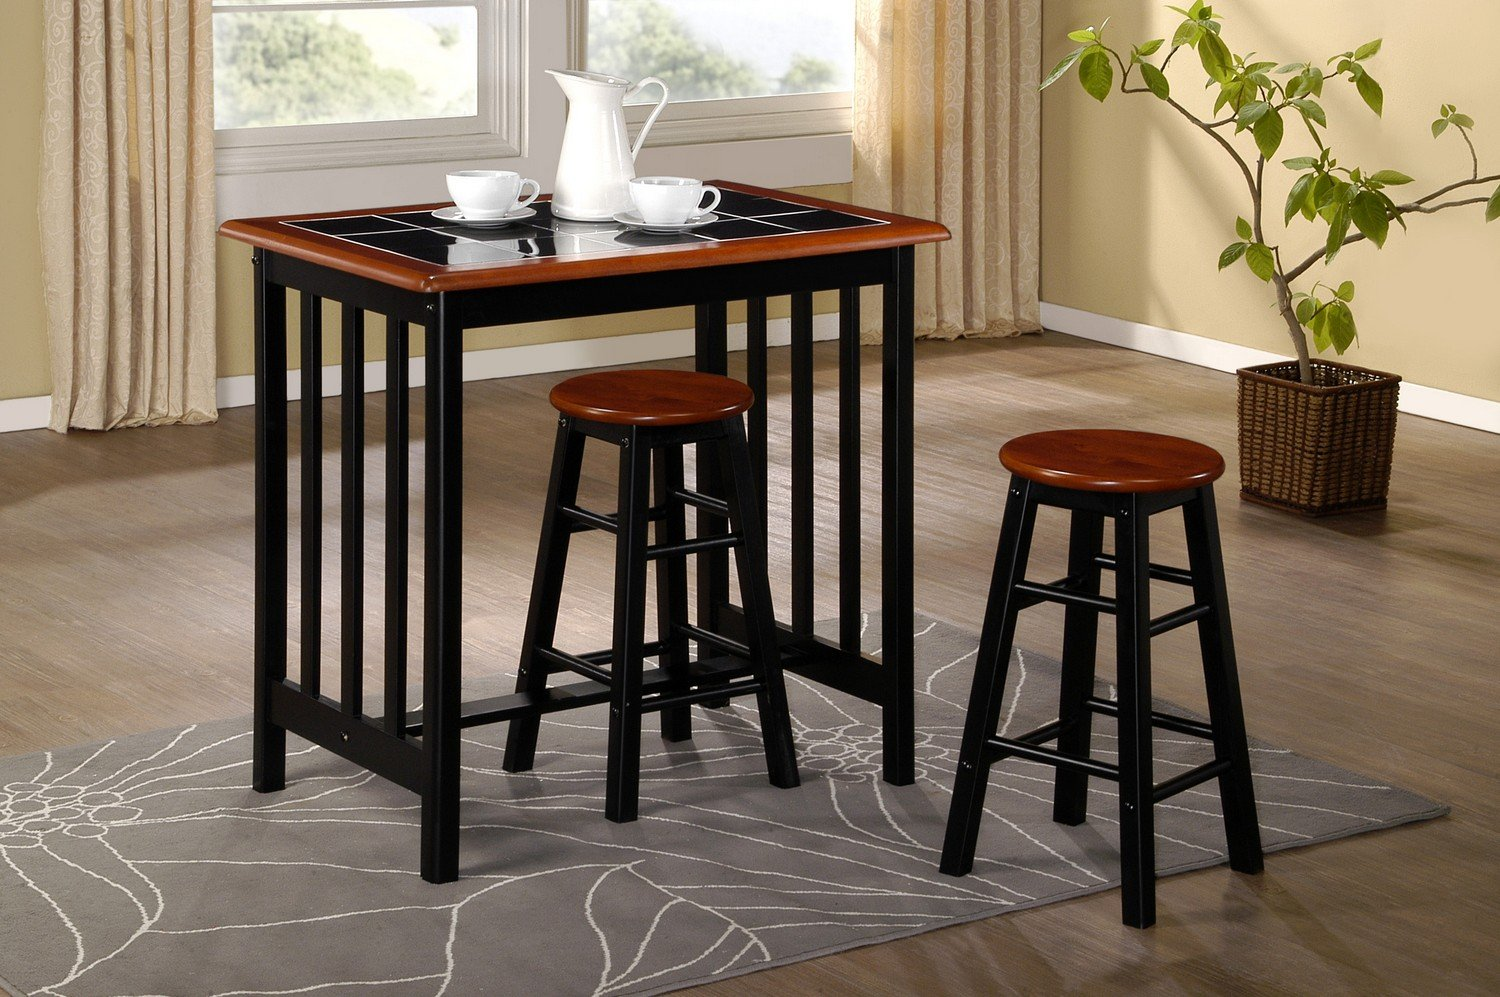 Kitchen bar table sets - Breakfast Bar Dining Set Kitchen Table And 2 Stools Black Tile Top And Wood Stylish Compact Dining Set W89 X D60 X H86cm Amazon Co Uk Kitchen Home